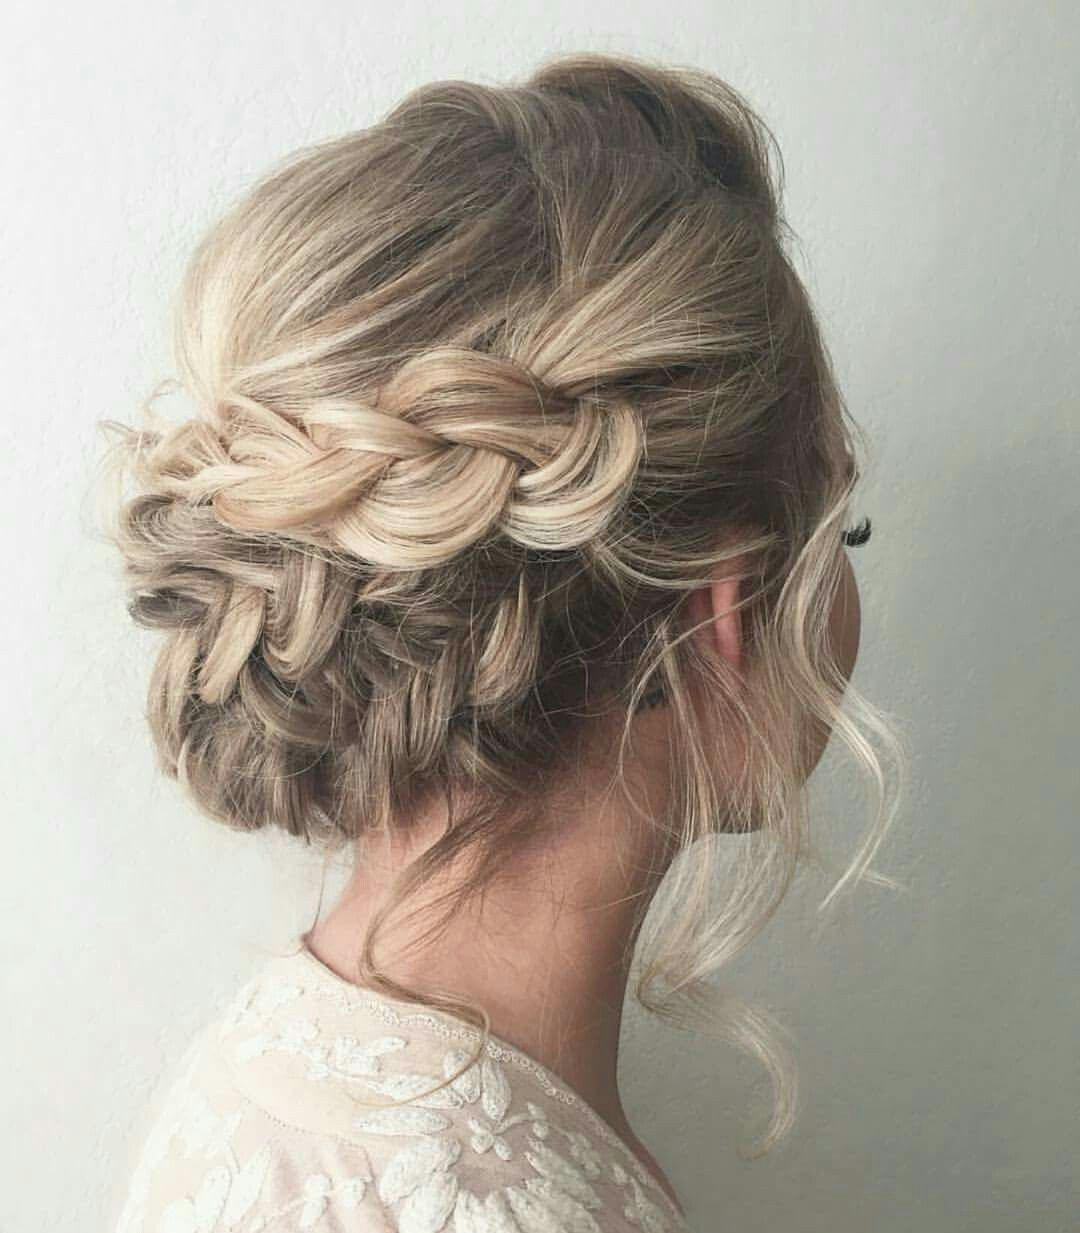 Party Hairstyles Best Pinagnieszka On Uroda  Pinterest  Prom Hair Style And Prom Hair